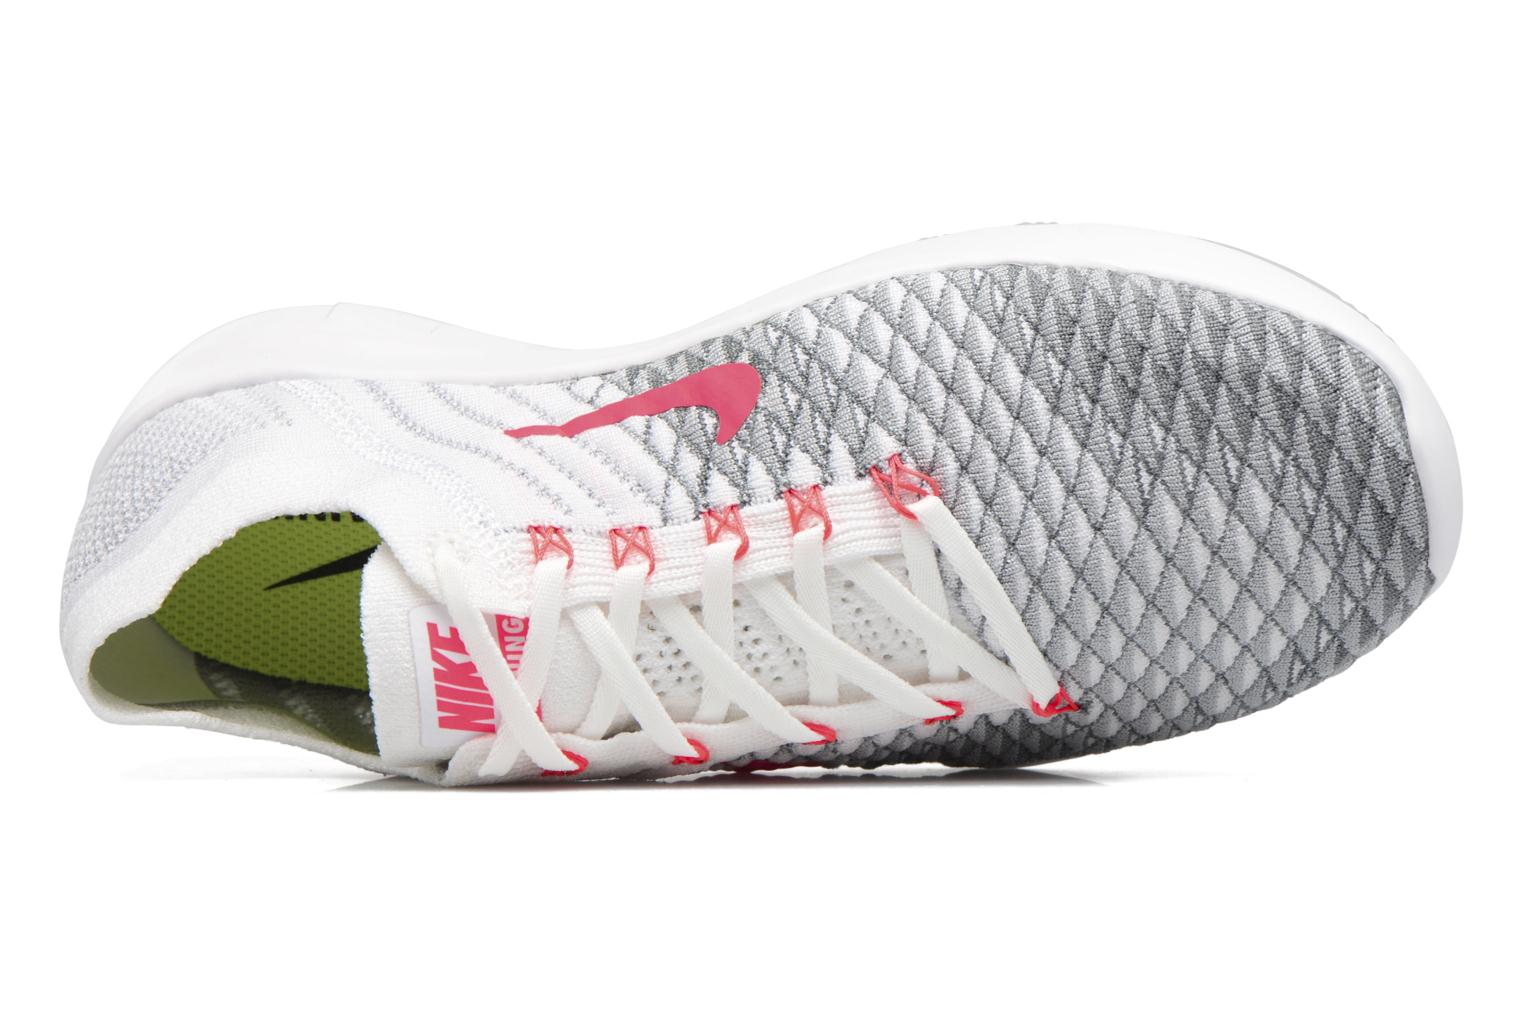 Wmns Nike Free Tr Flyknit 2 White/Hyper Punch-Wolf Grey-Cool Grey